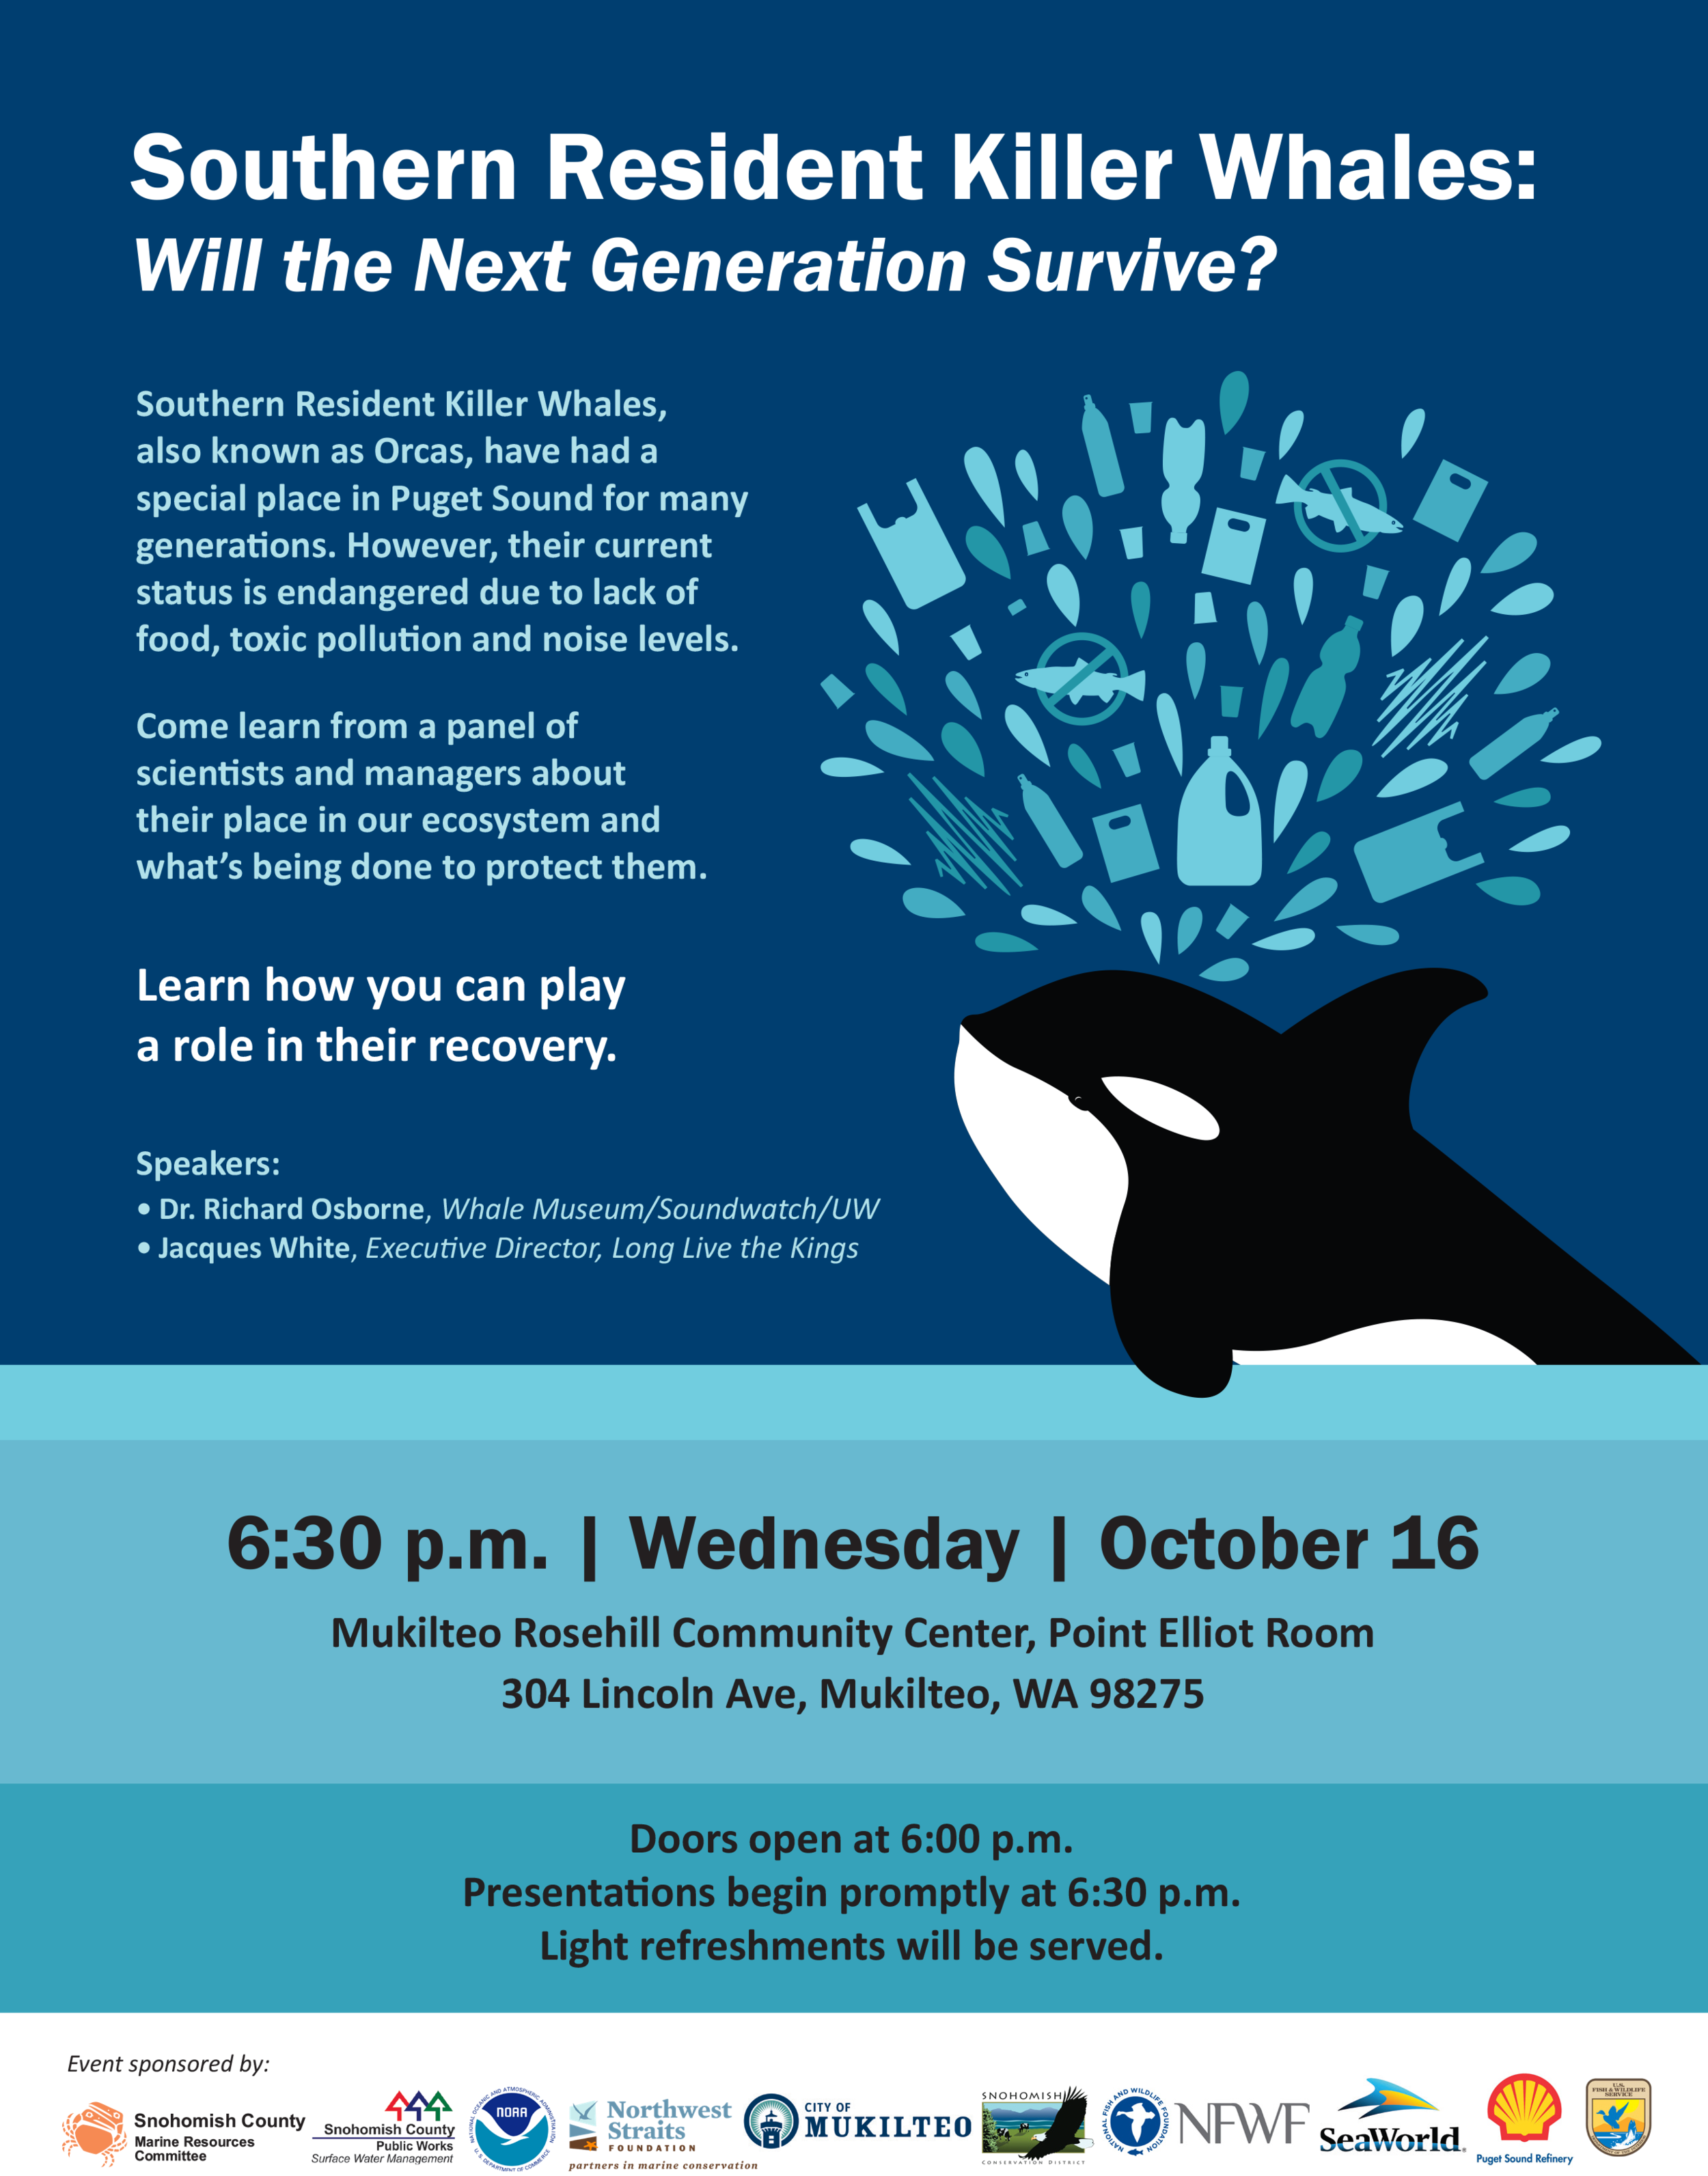 Join us on October 16th at 6:30 p.m. in Mukilteo for an educational talk.